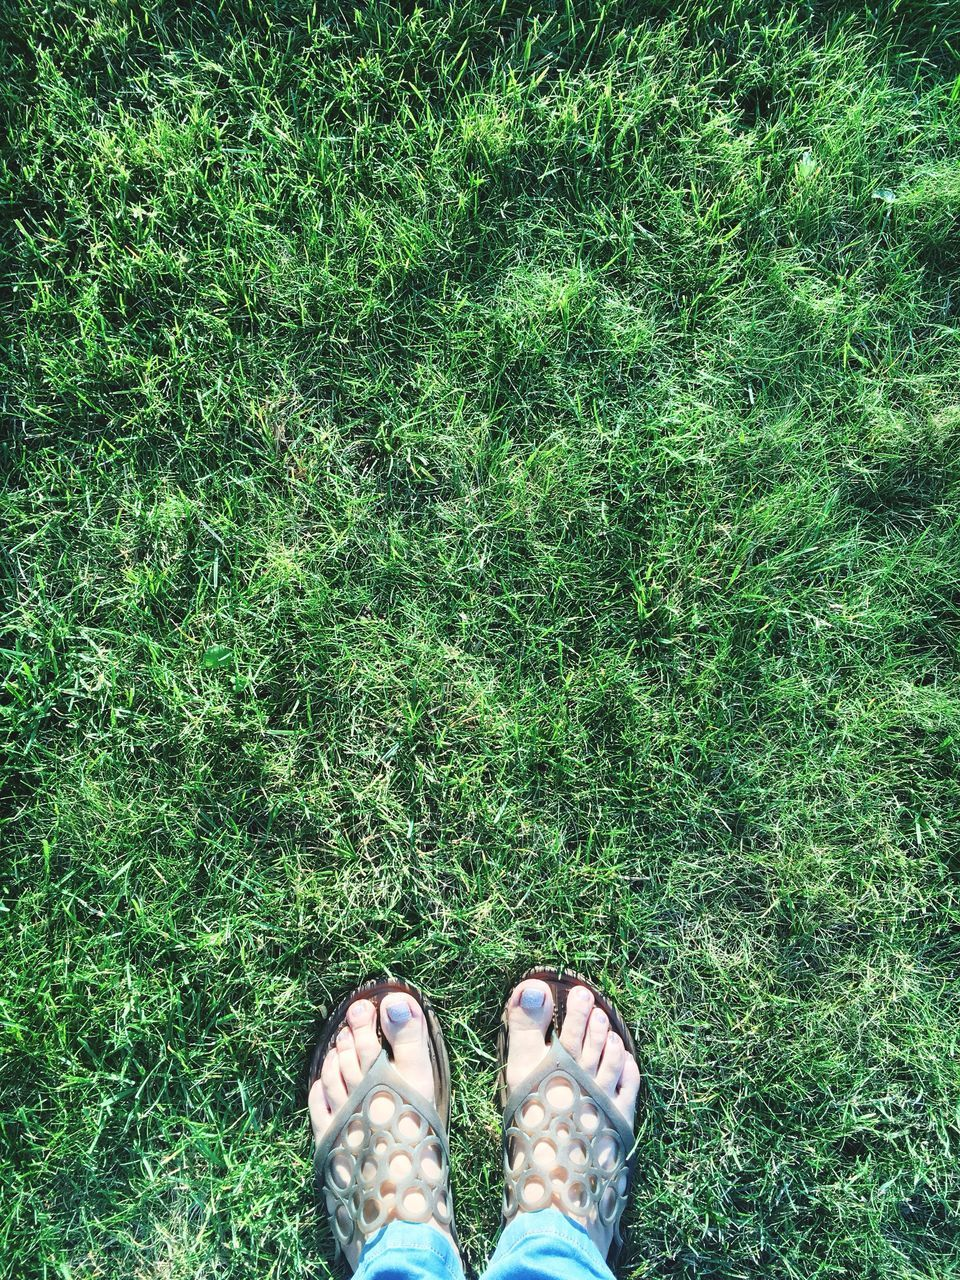 grass, low section, human leg, standing, green color, one person, personal perspective, high angle view, shoe, human body part, directly above, outdoors, day, field, real people, men, nature, women, adult, people